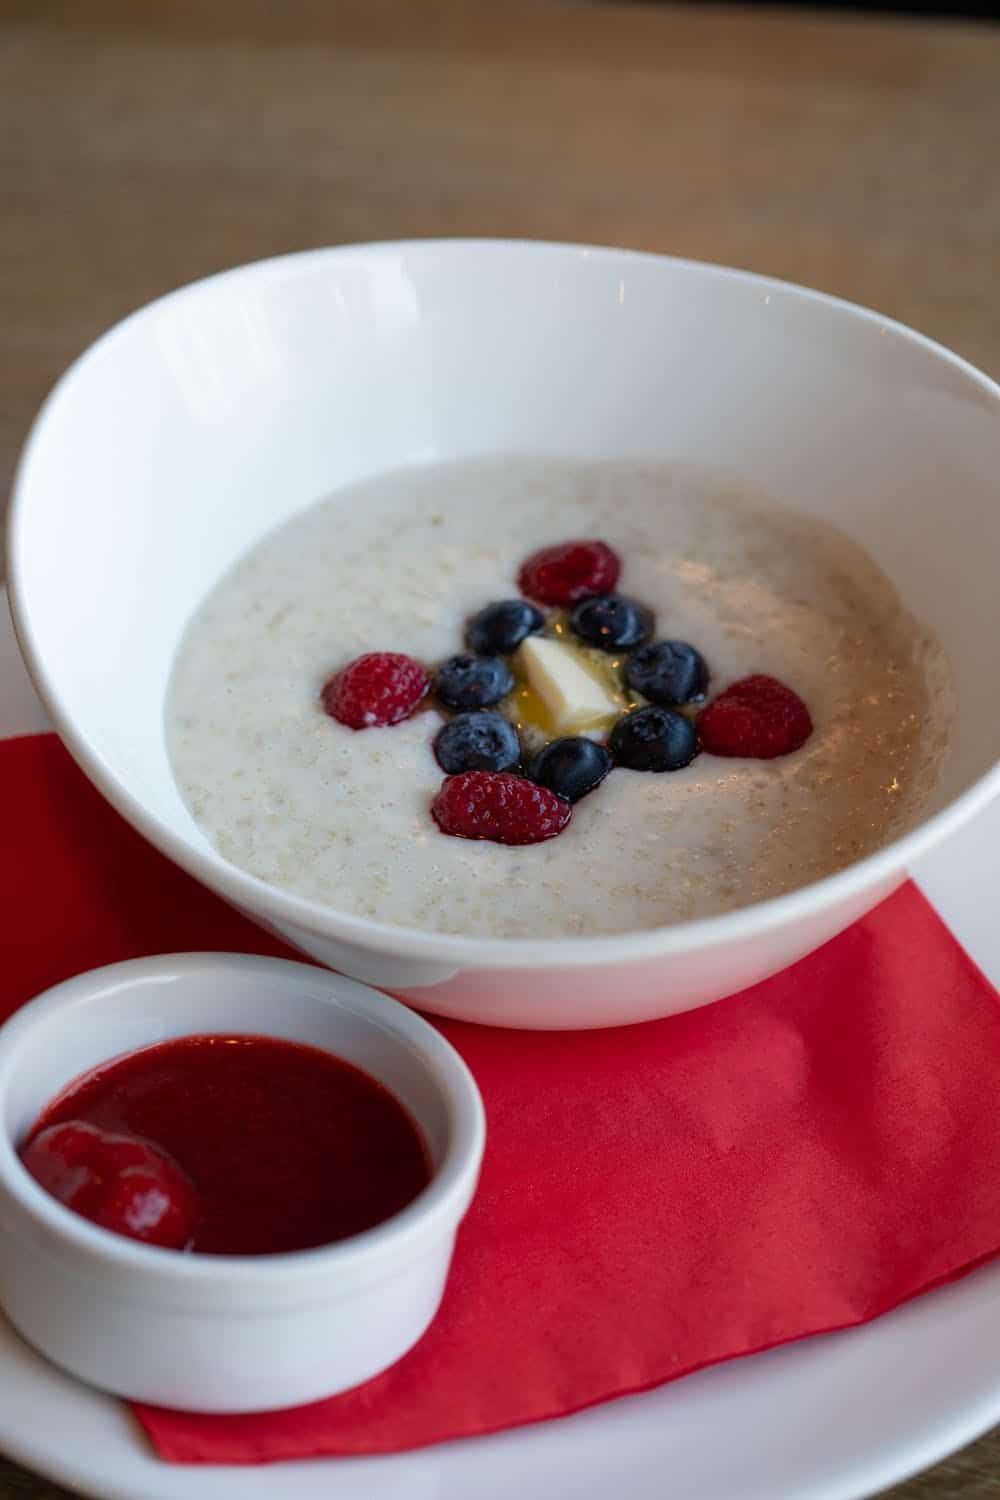 Cooked Irish oats is a white bowl with fresh berries on top